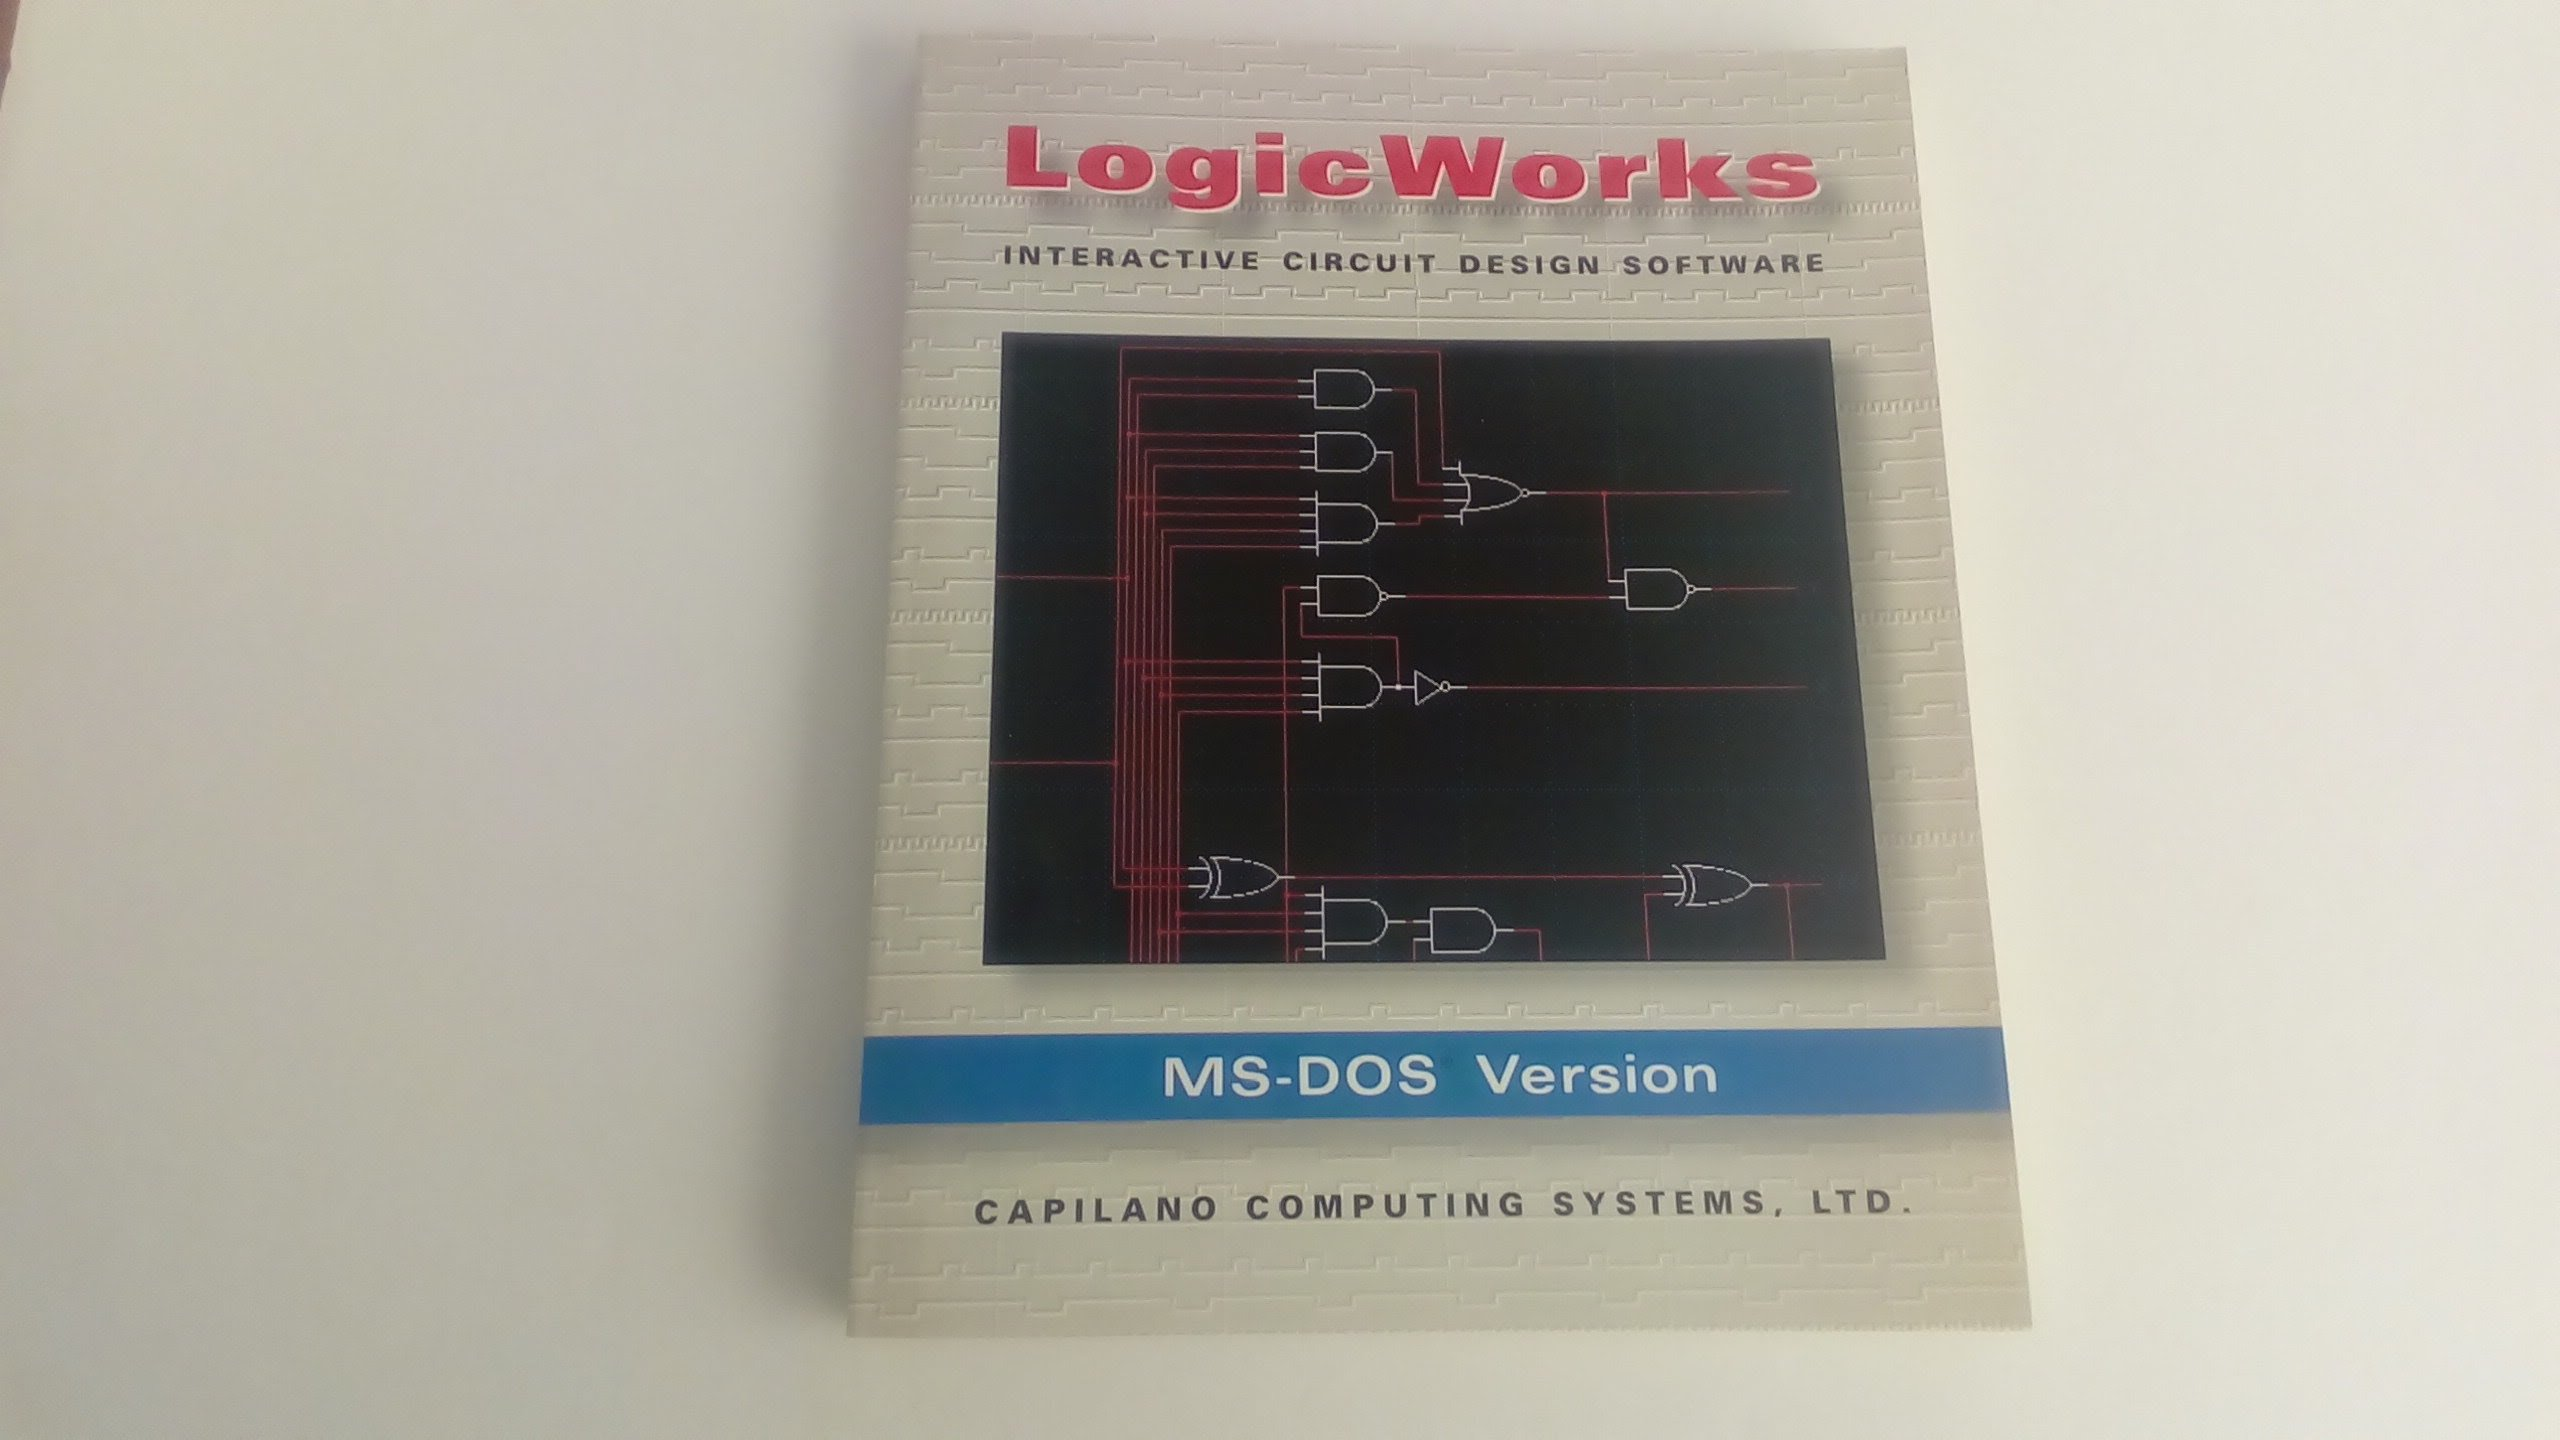 Logicworks Interactive Circuit Design Software Ms Dos Version Capilano Computing 9780805313109 Amazon Com Books